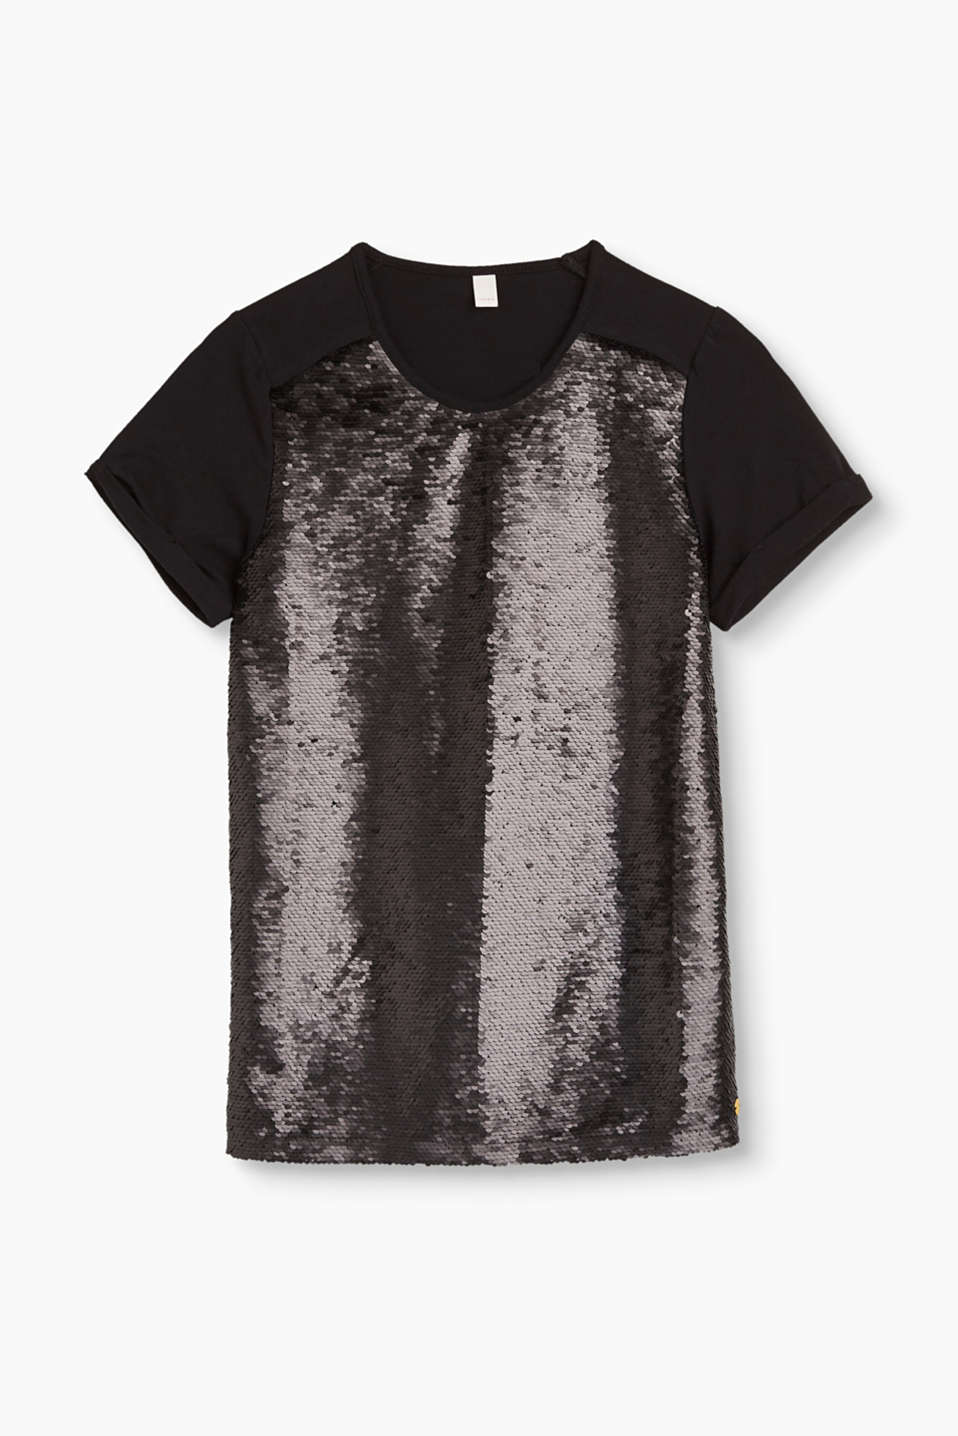 Sequins all-over: a head-turner! This jersey T-shirt stuns with its shimmery sequined look.